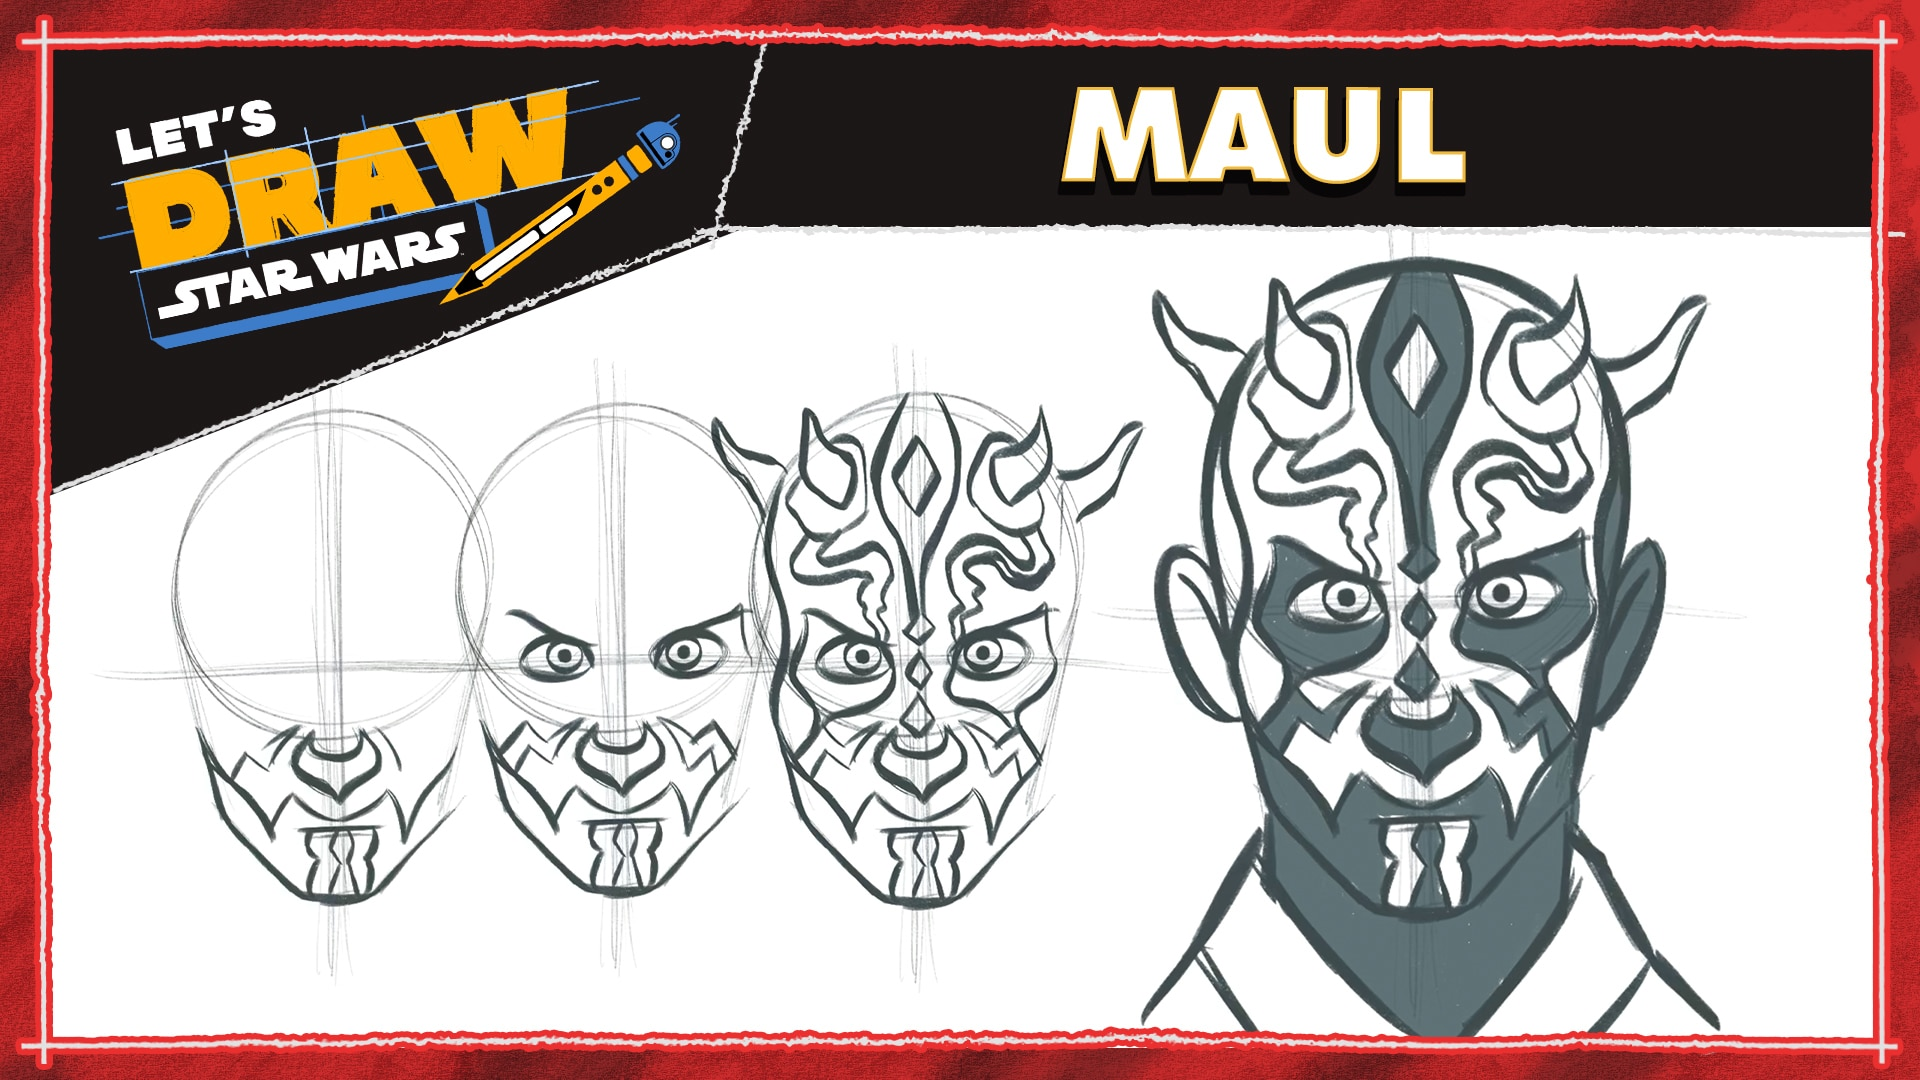 How to Draw Maul | Let's Draw Star Wars